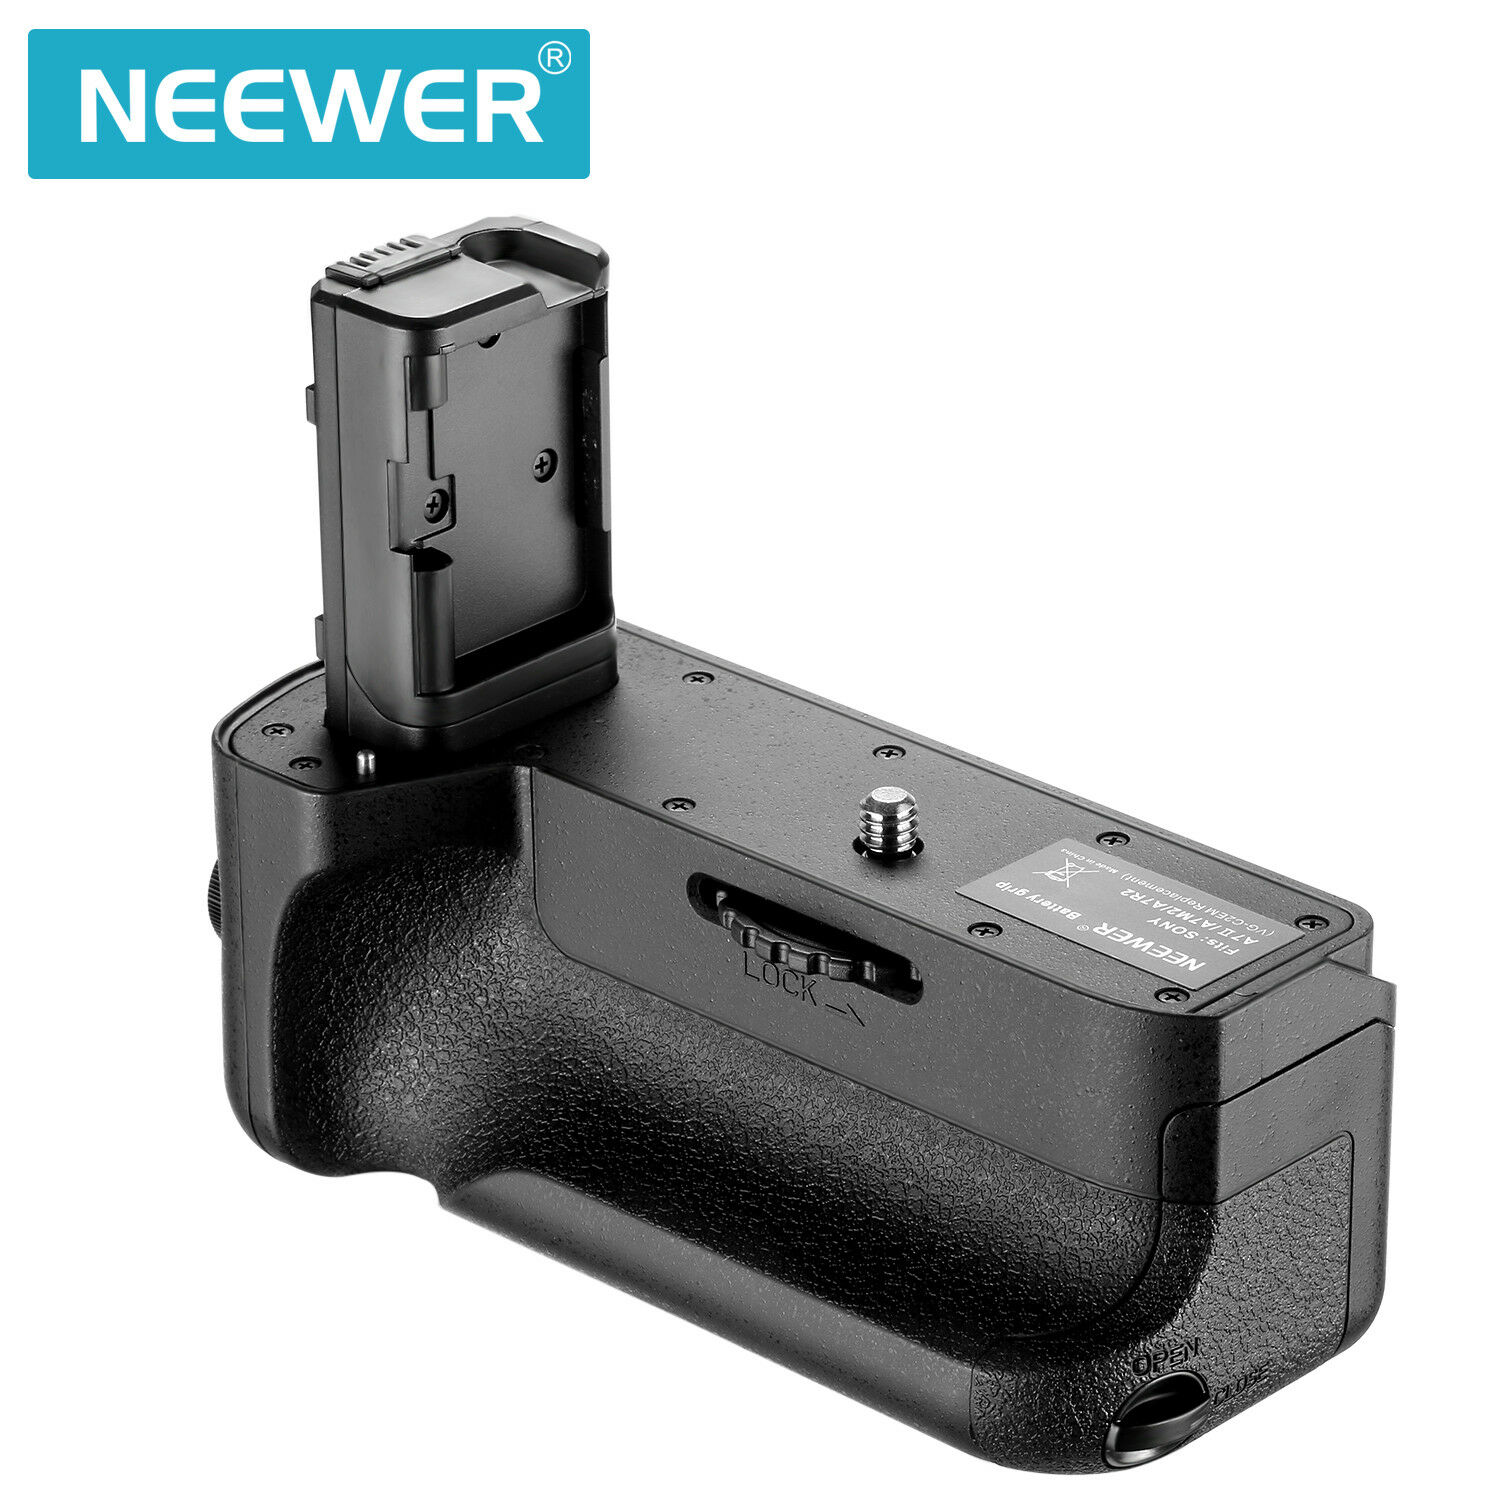 Neewer VG-C2EM Replacement Vertical Battery Grip for Sony A7 II A7R II, A7S II